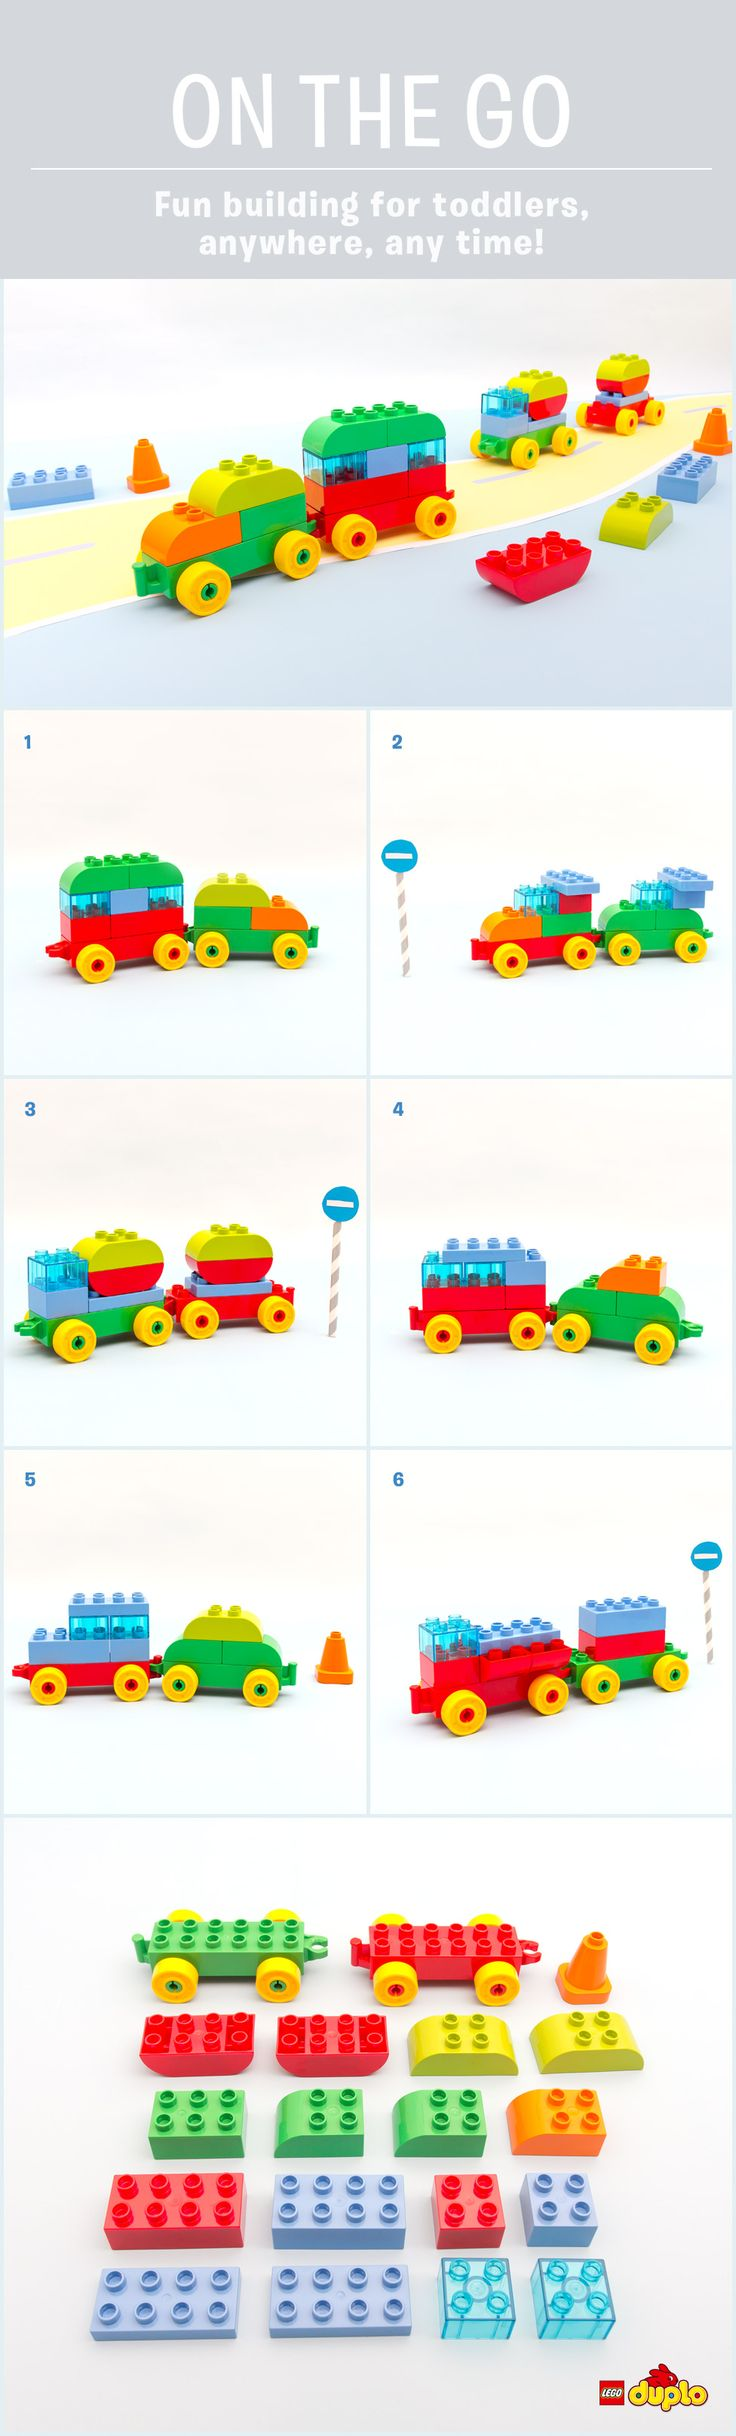 "Those famous words we all love to hear… ""are we nearly there yet?!"" Keep your toddlers entertained on the move, with these fun car builds. Only 15-20 DUPLO bricks required! http://www.lego.com/en-us/family/articles/on-the-go-road-trip-car-building-game-71d8c74de7d74c7eabda7e67bf7fbe03"